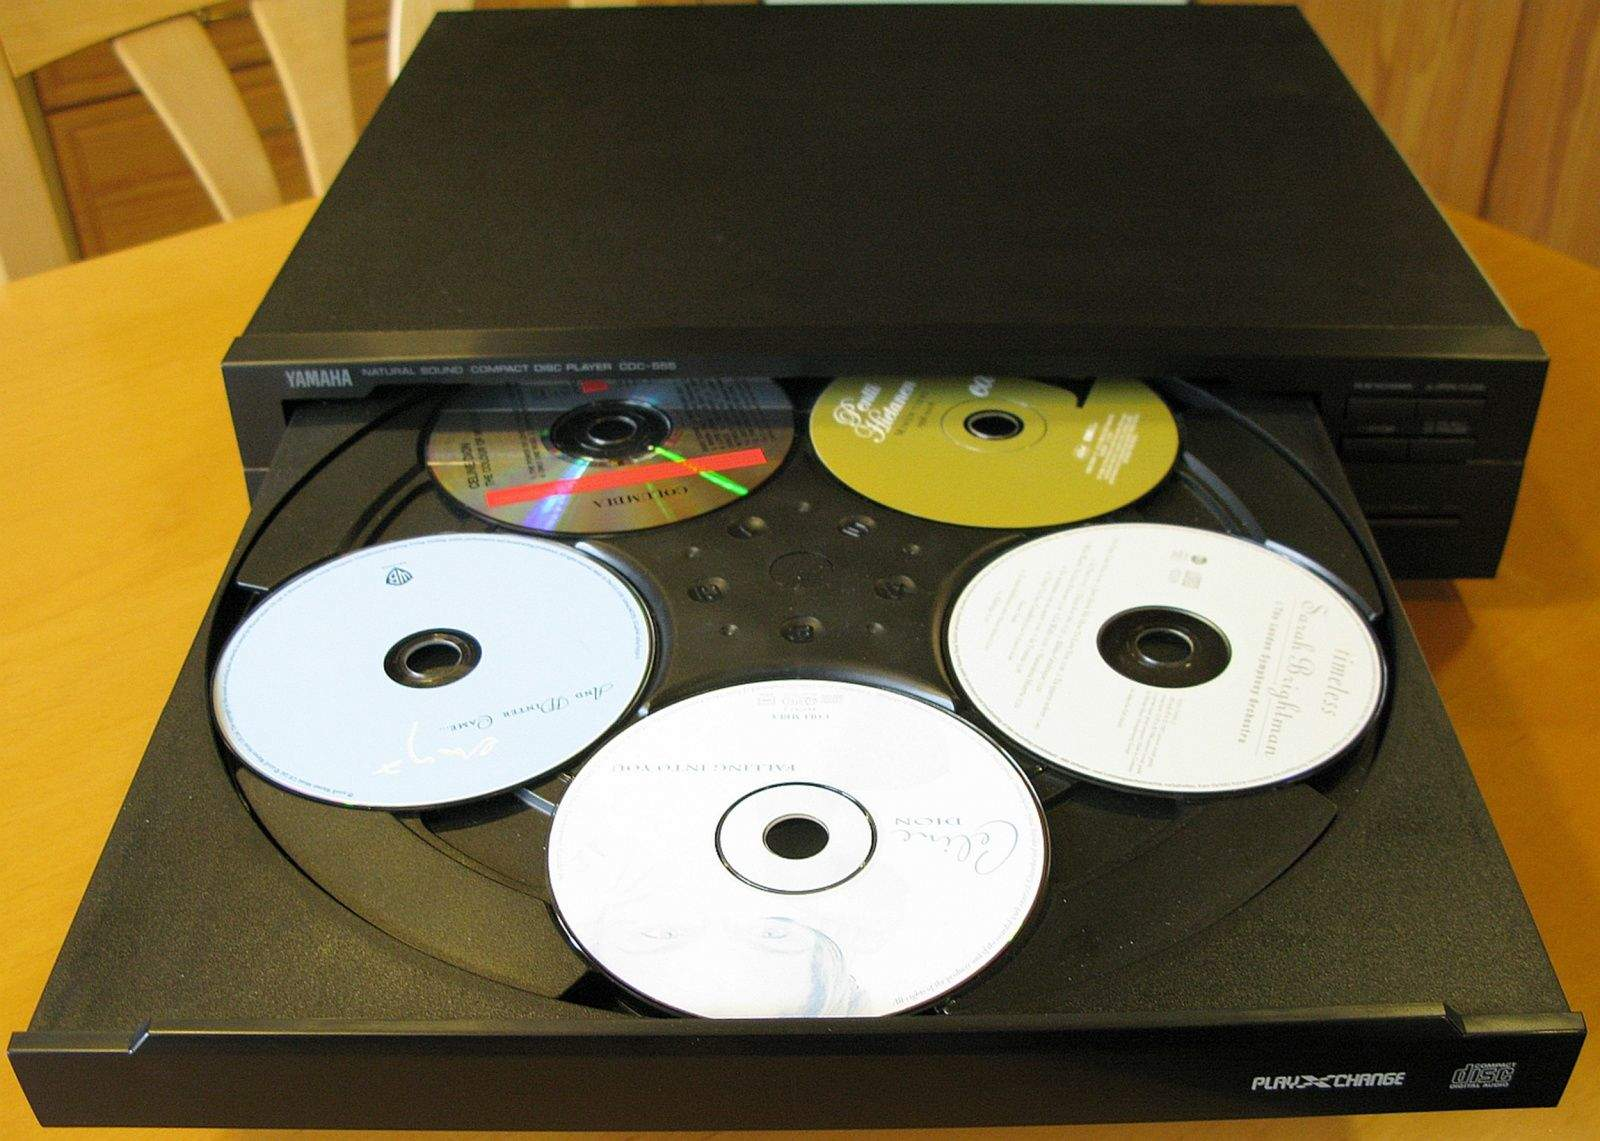 the emergence and evolution of the compact disks and music digital formats